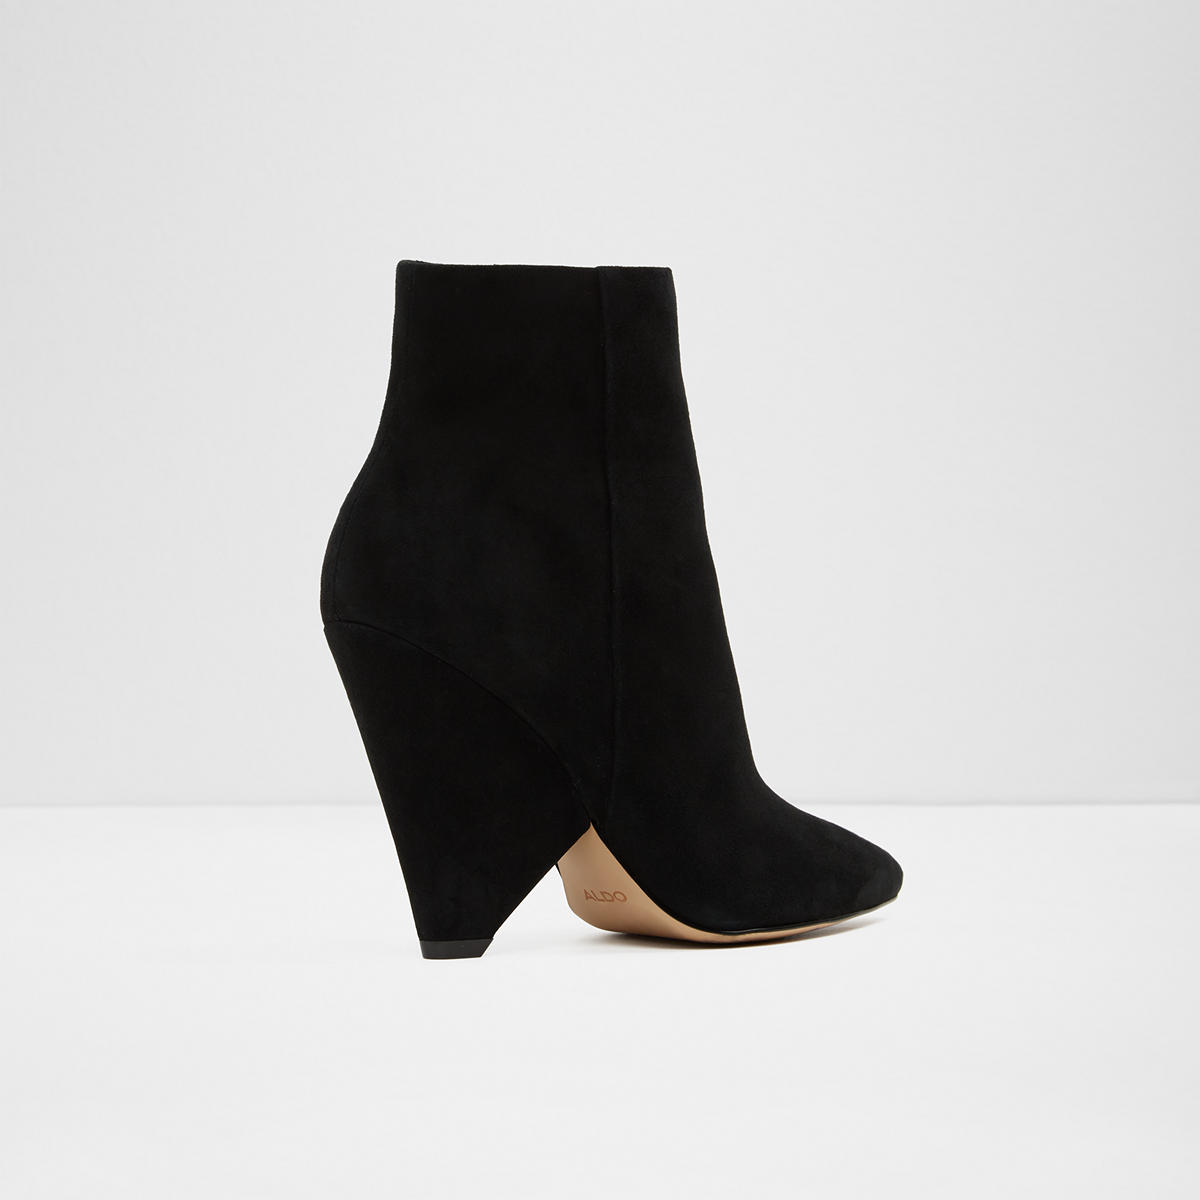 Other Other Other boots Black Ankle Women's Frerilla US 4zq5W